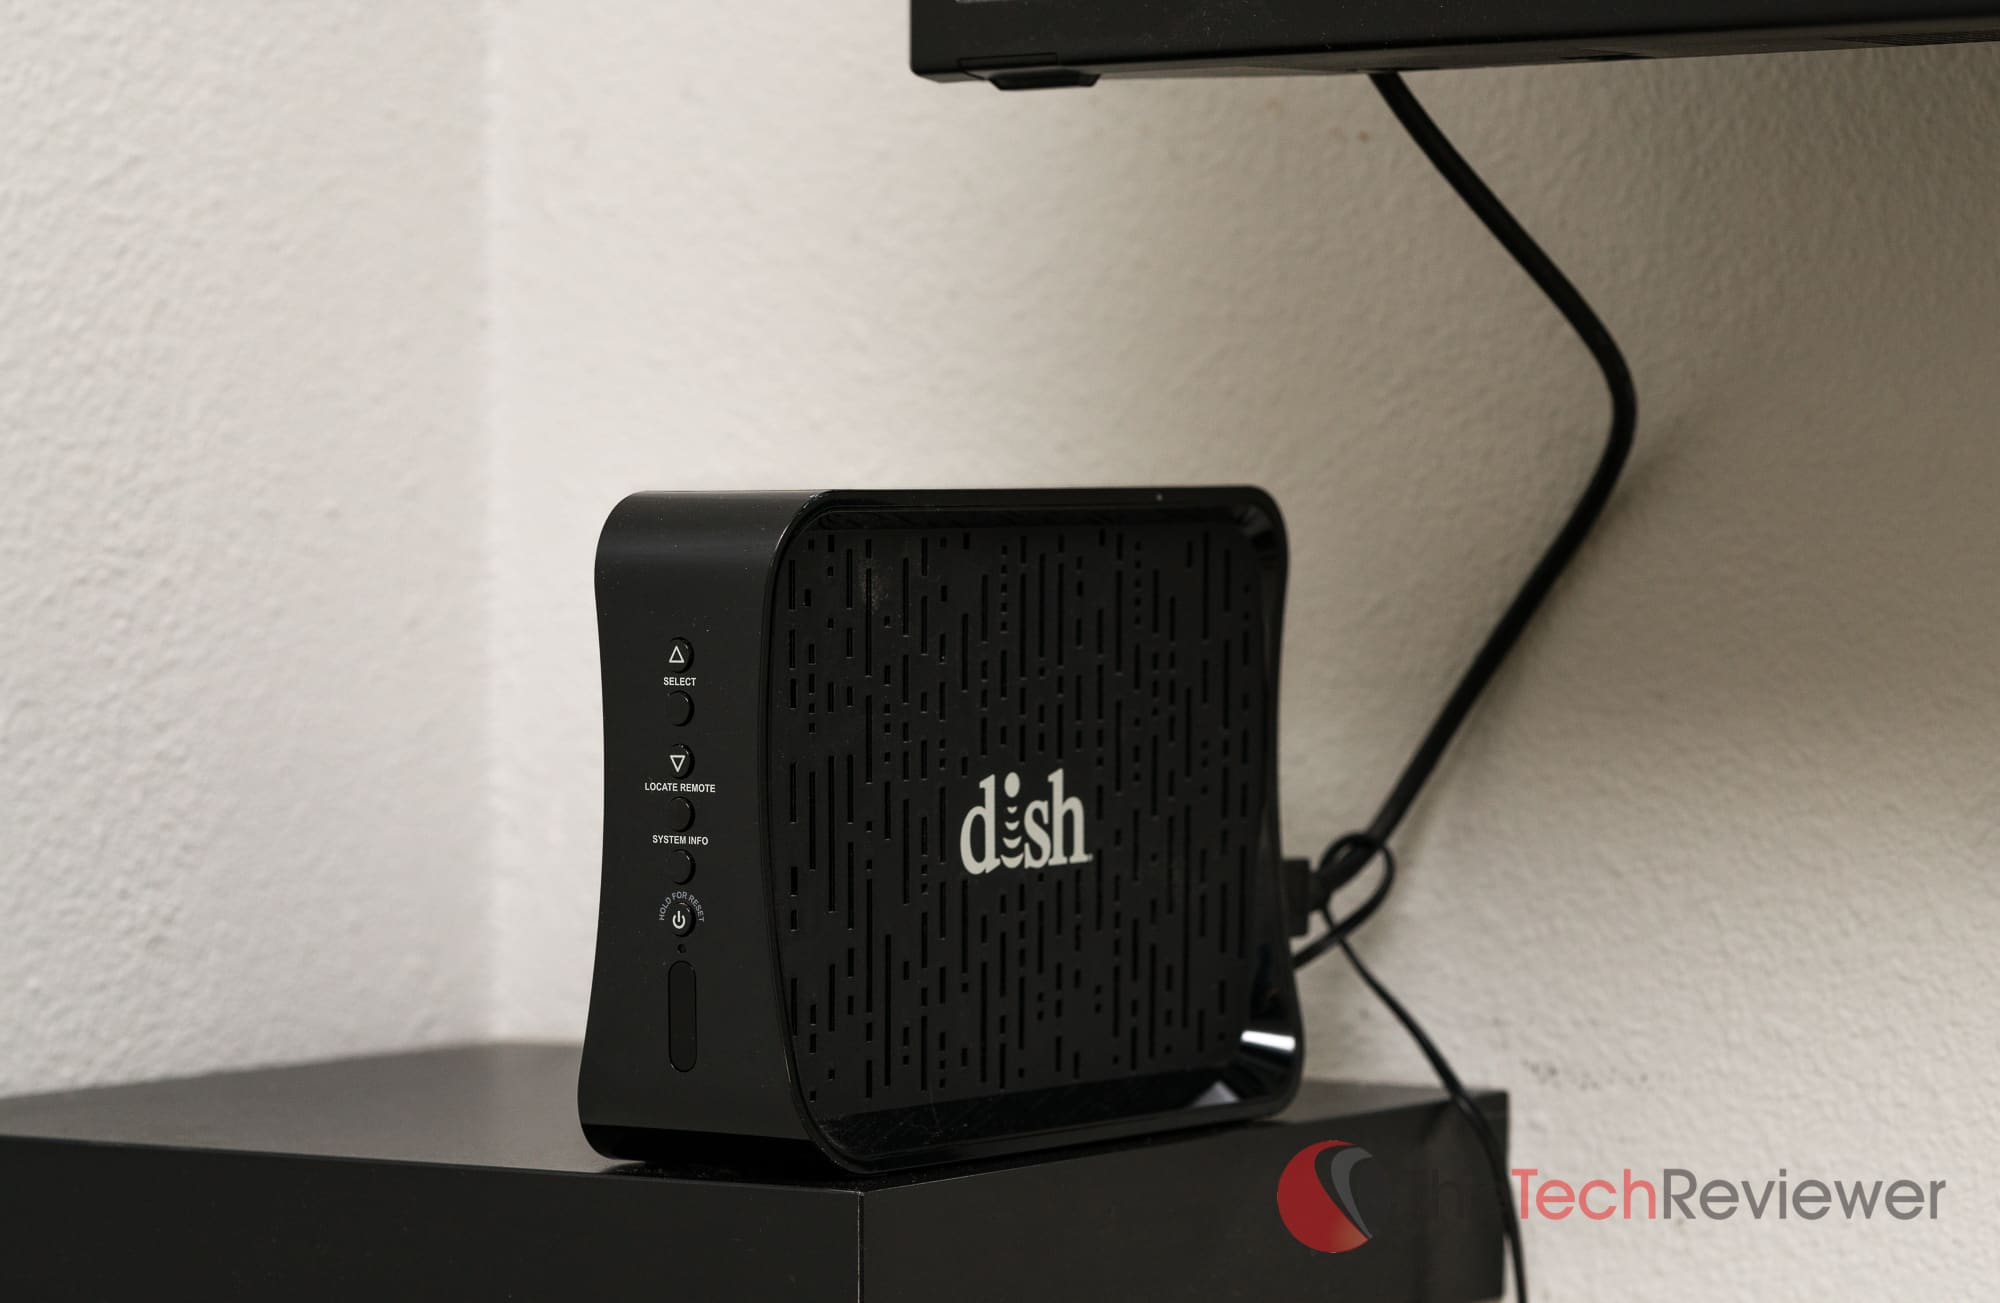 DISH Wireless Joey